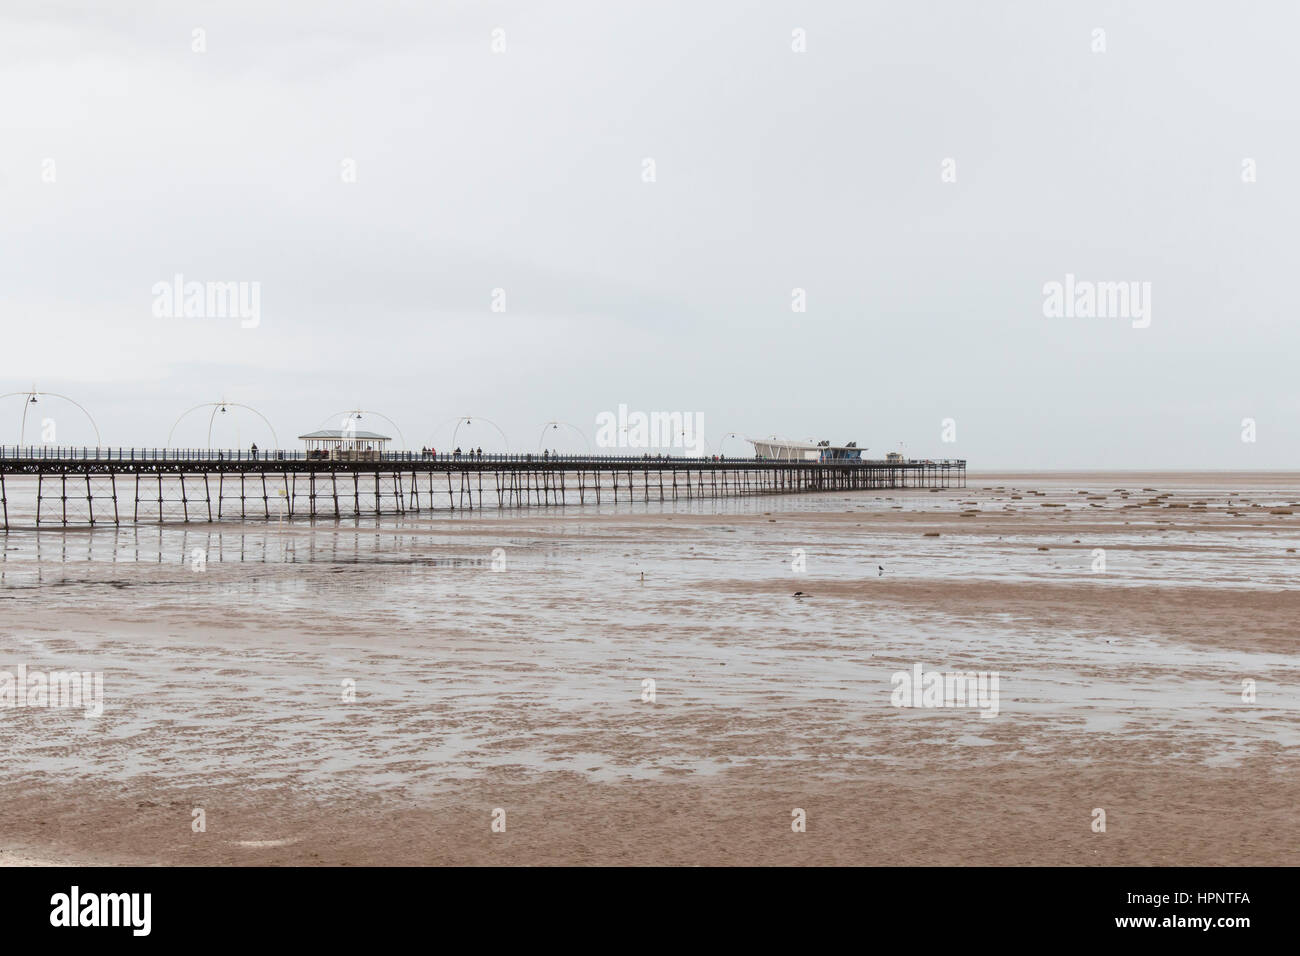 Southport Pier on the sea front, during an un-seasonally warm February day. 22/02/17. - Stock Image